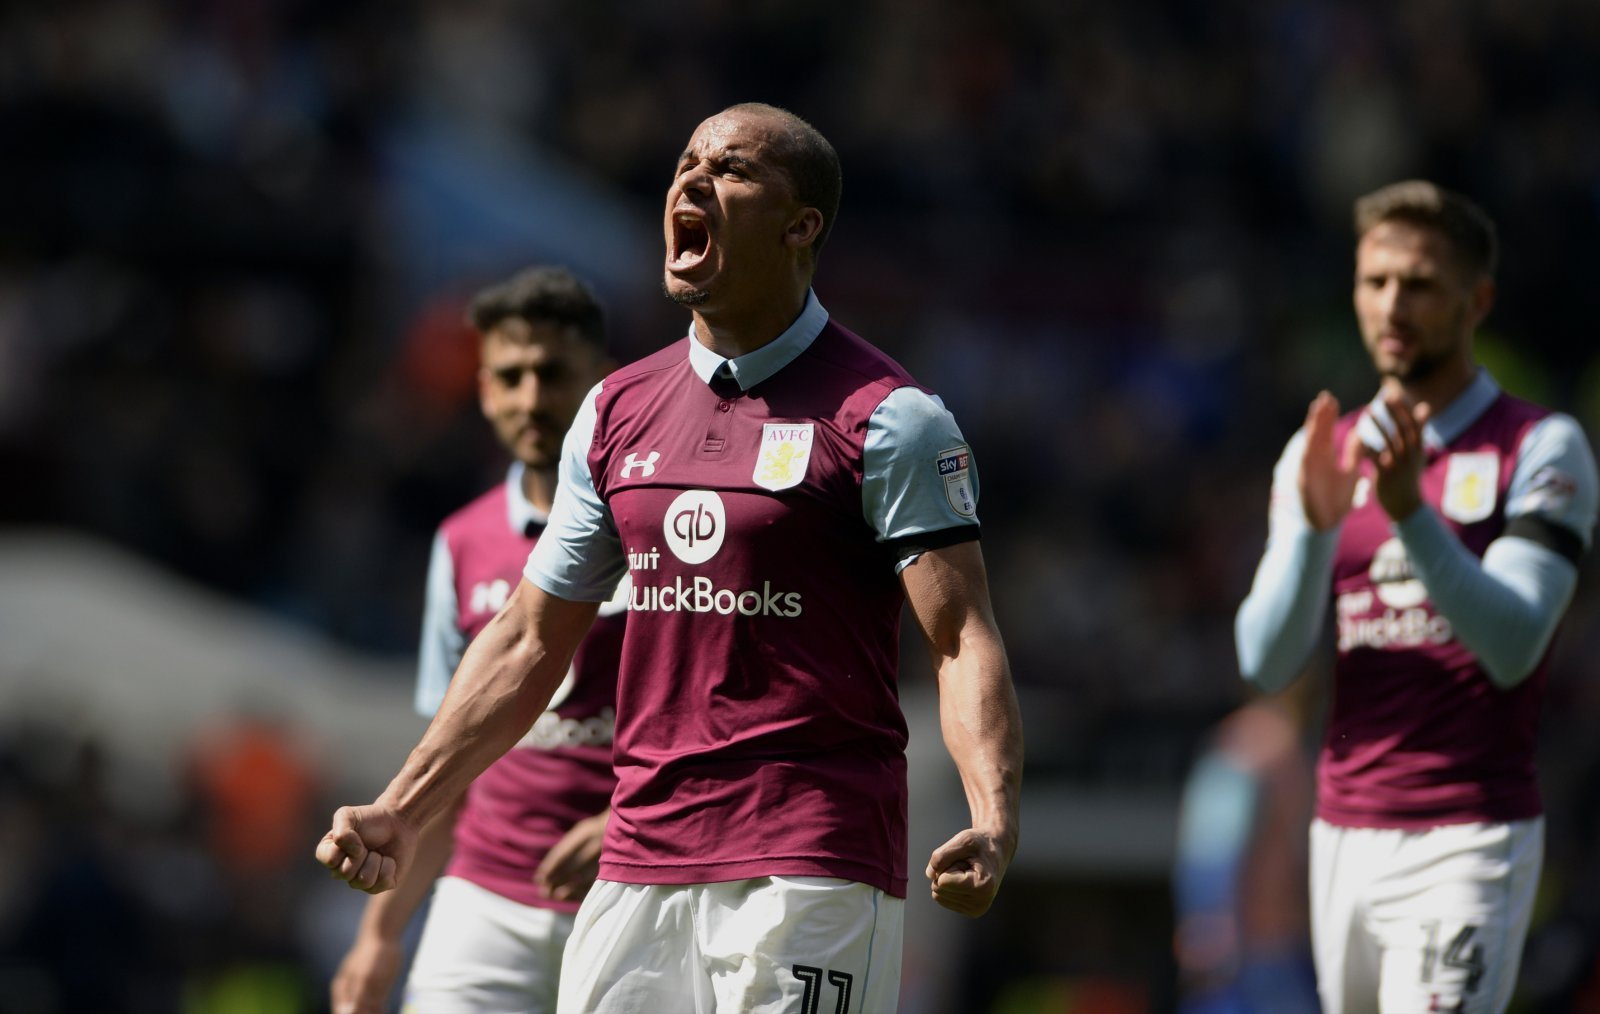 Villa fans pay tribute to Agbonlahor on the striker's birthday